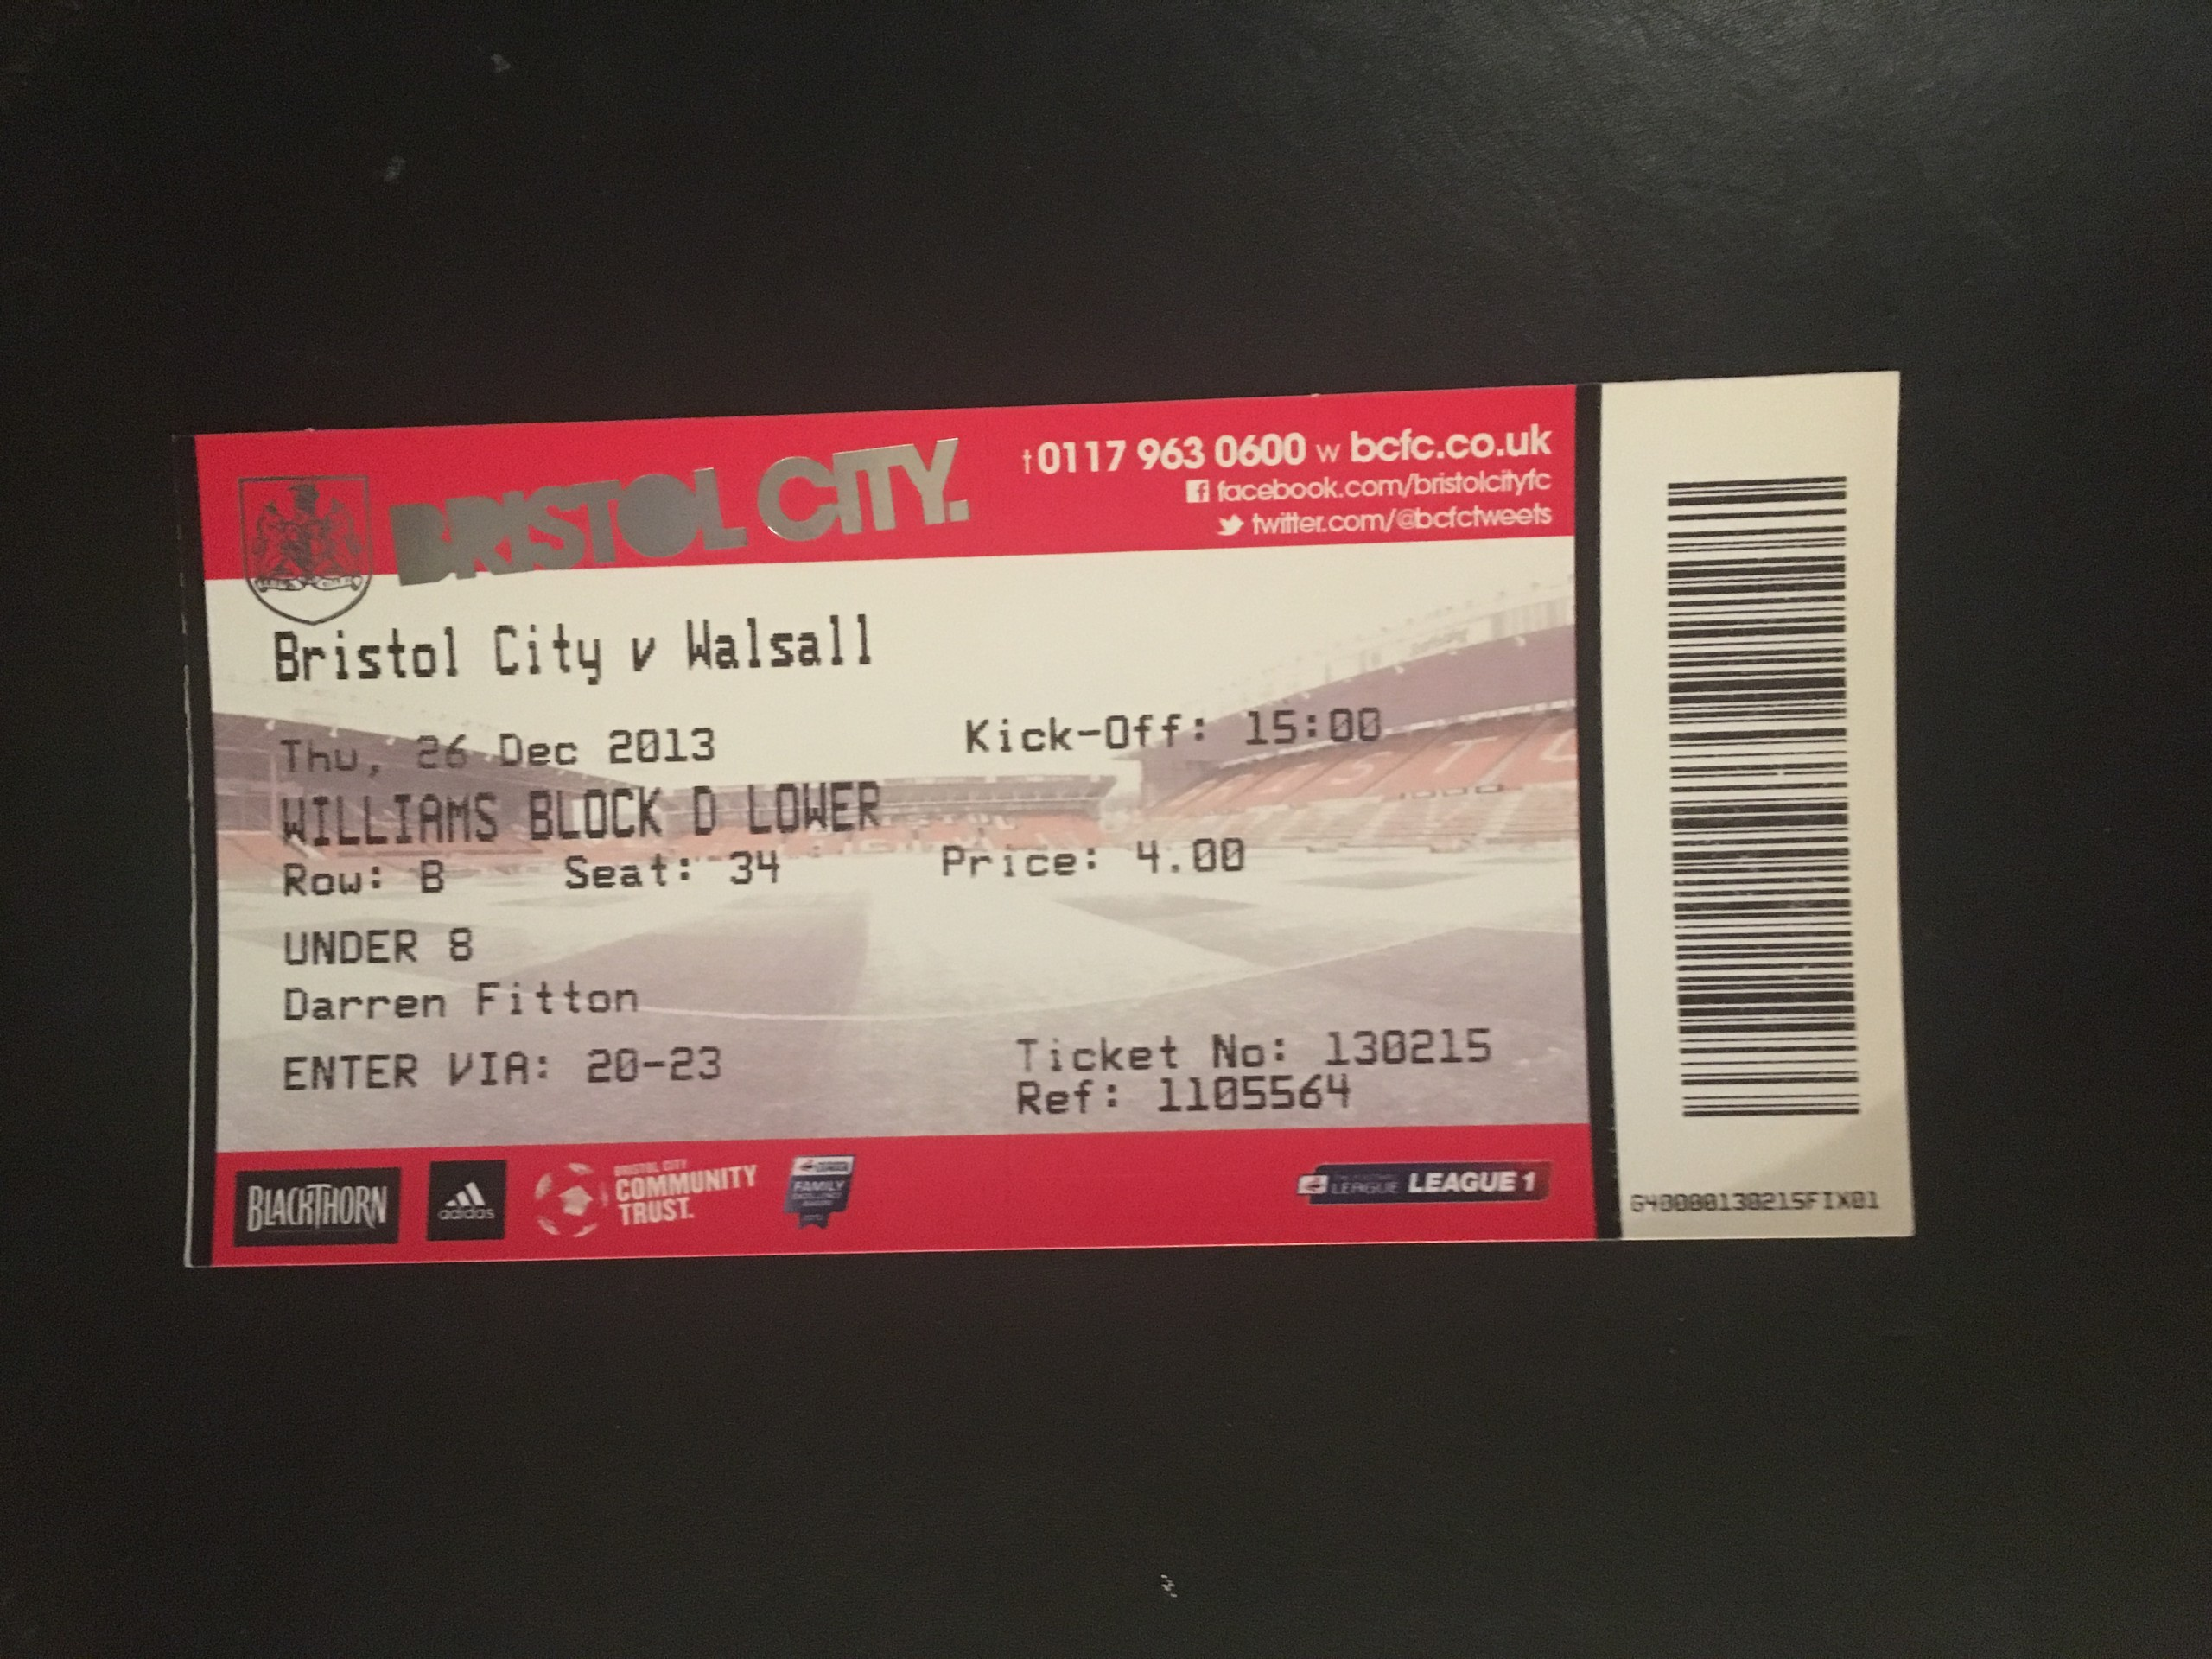 Bristol City v Walsall 26-12-2013 Ticket